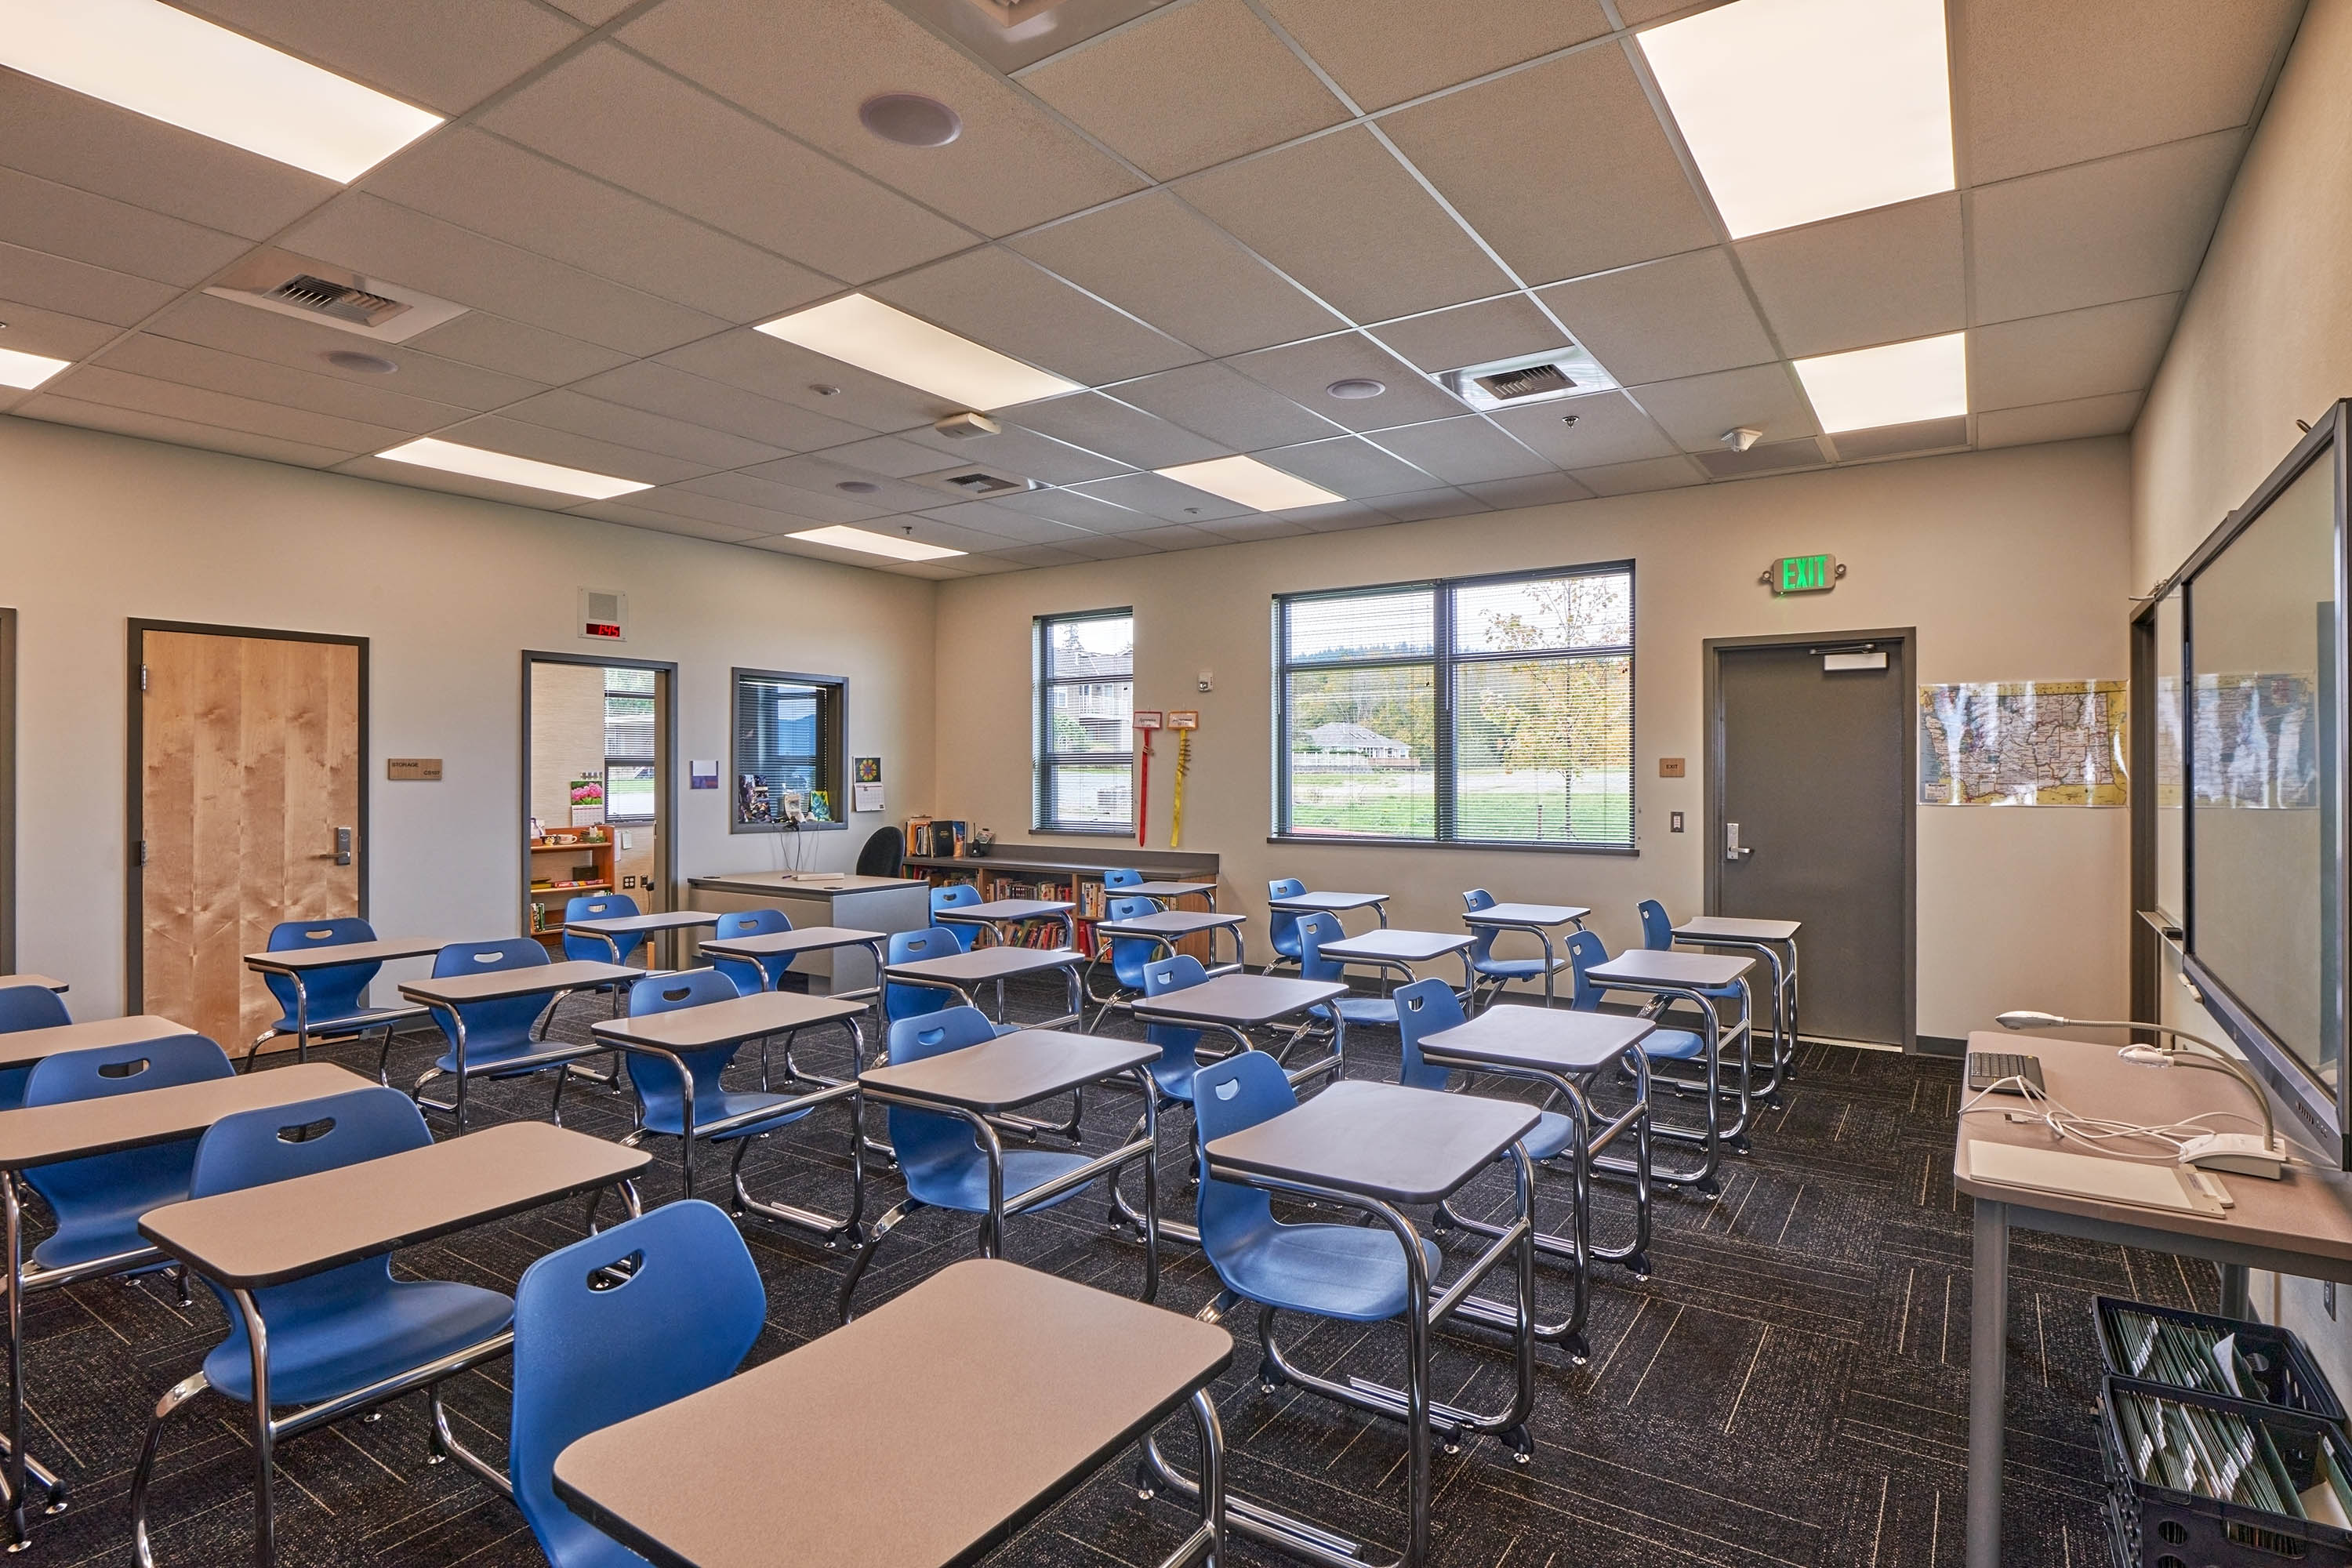 Overview photo of a classroom.